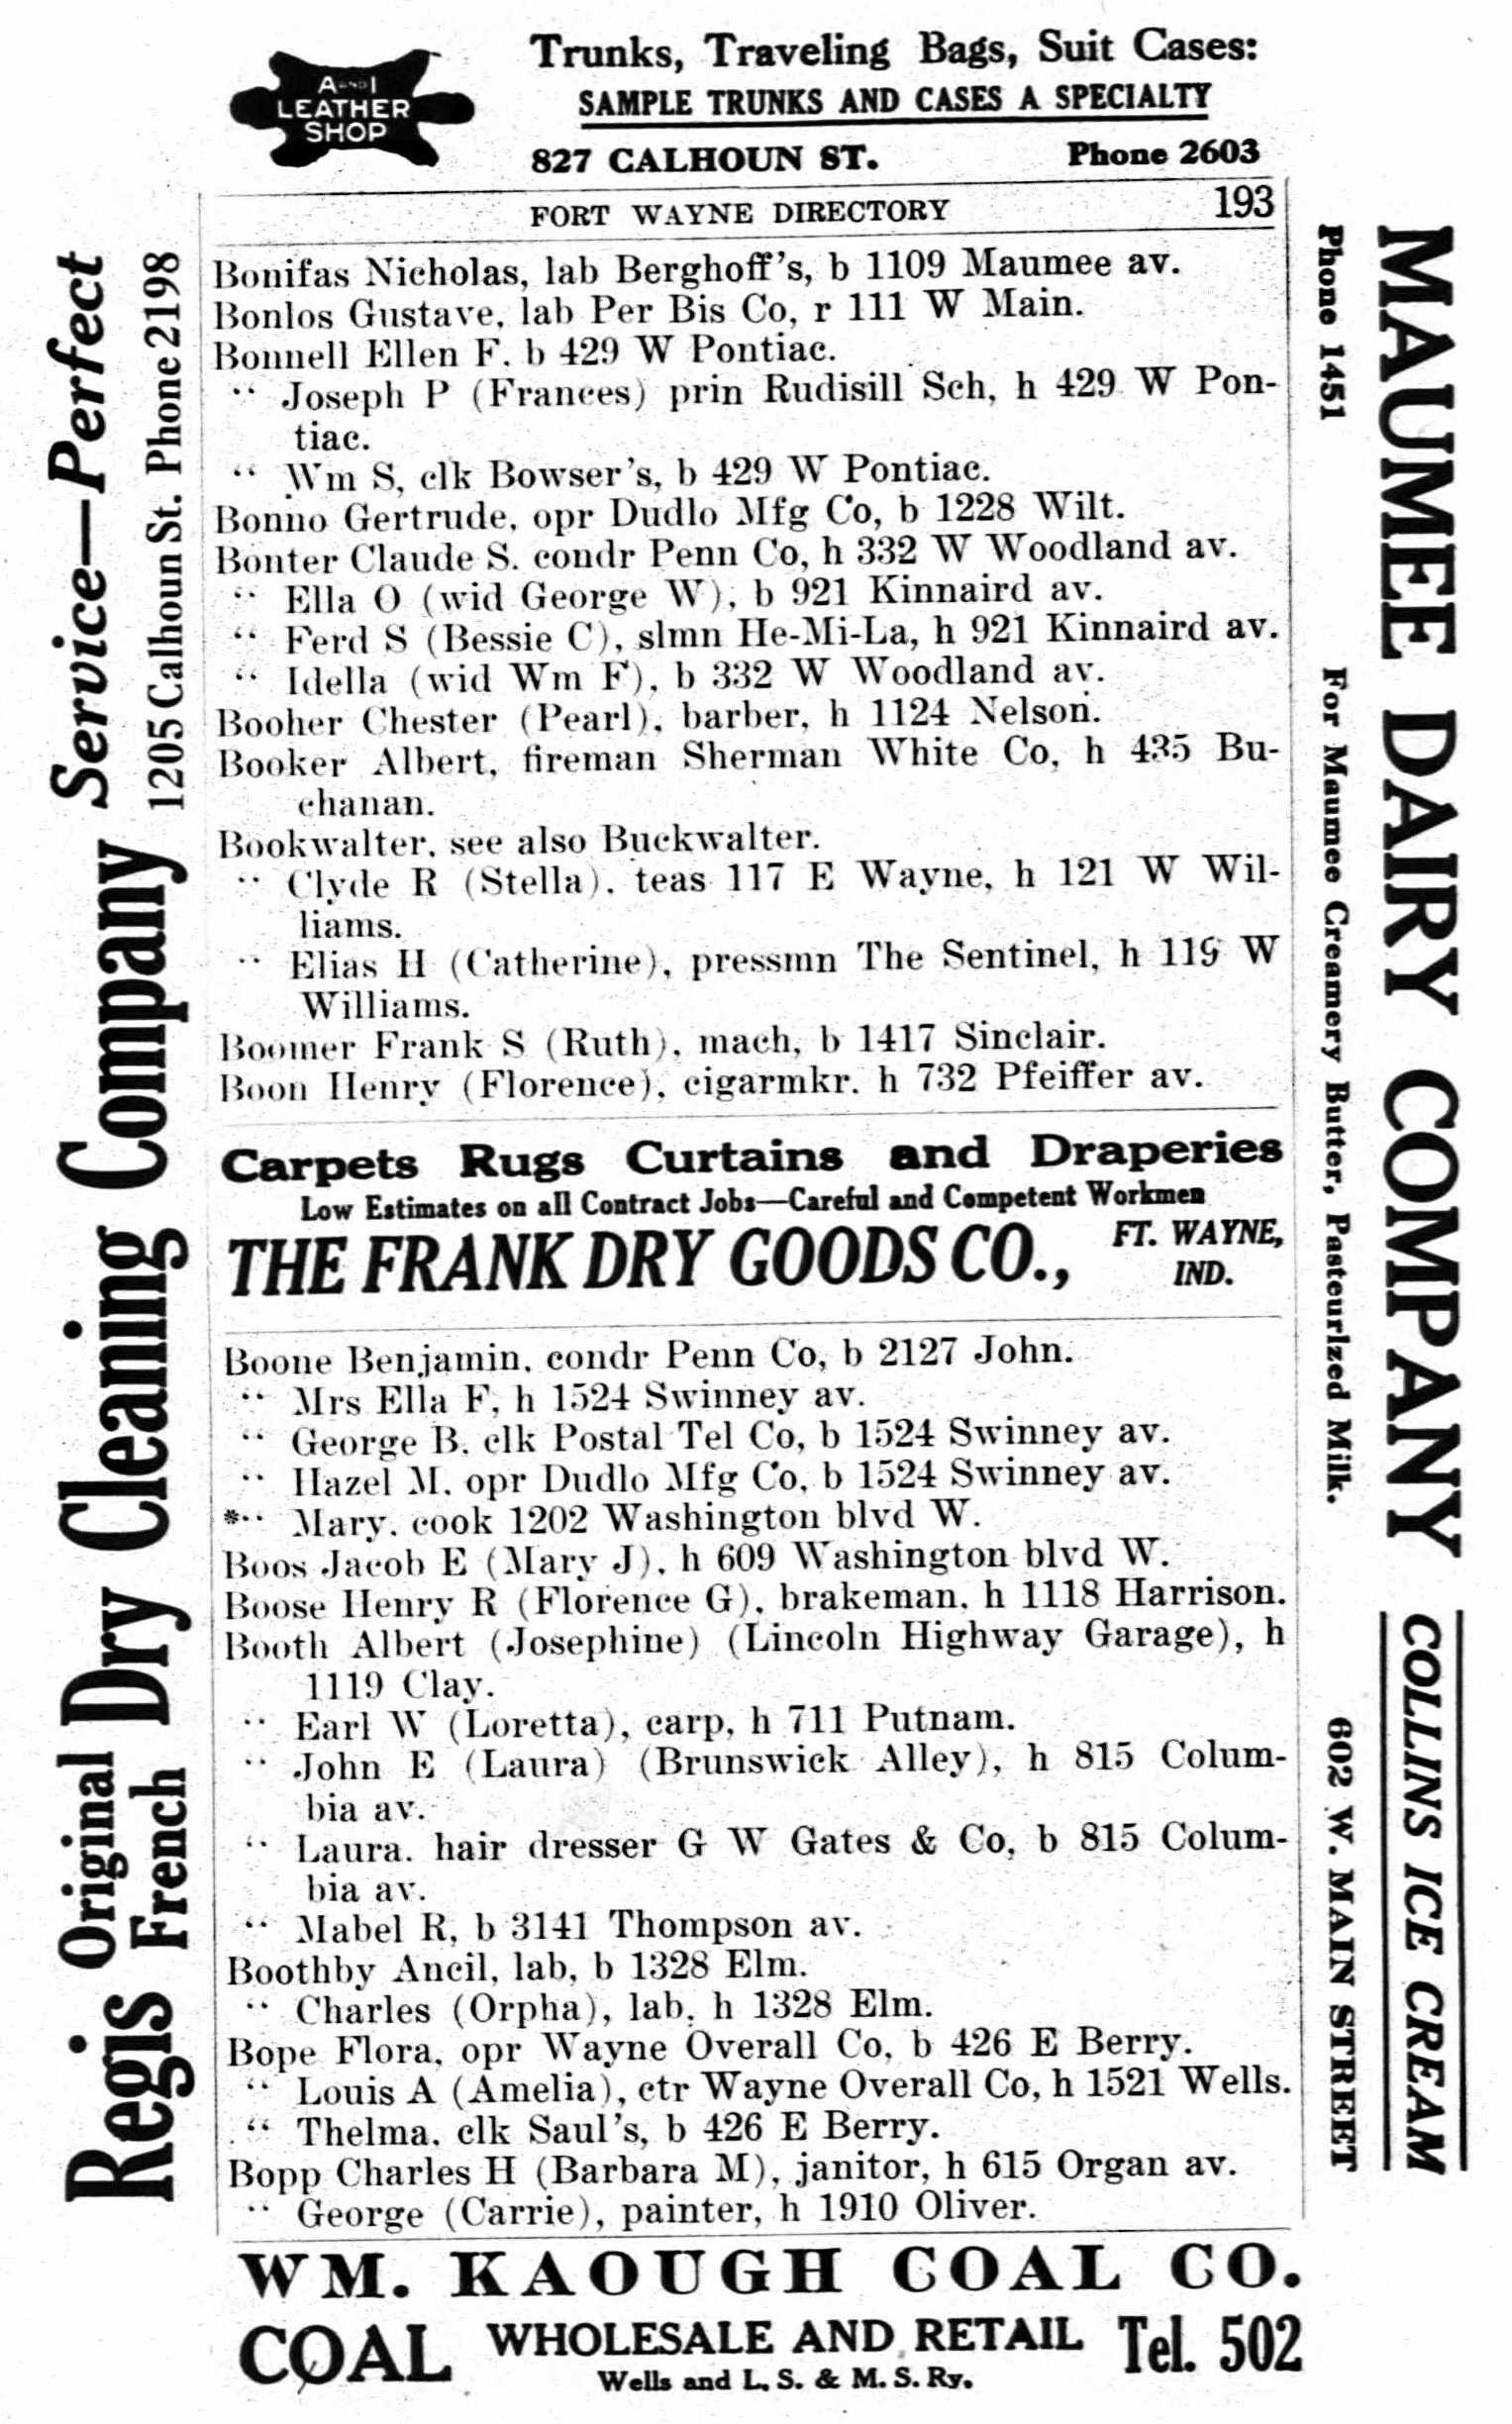 Fort Wayne City Directory - 1915